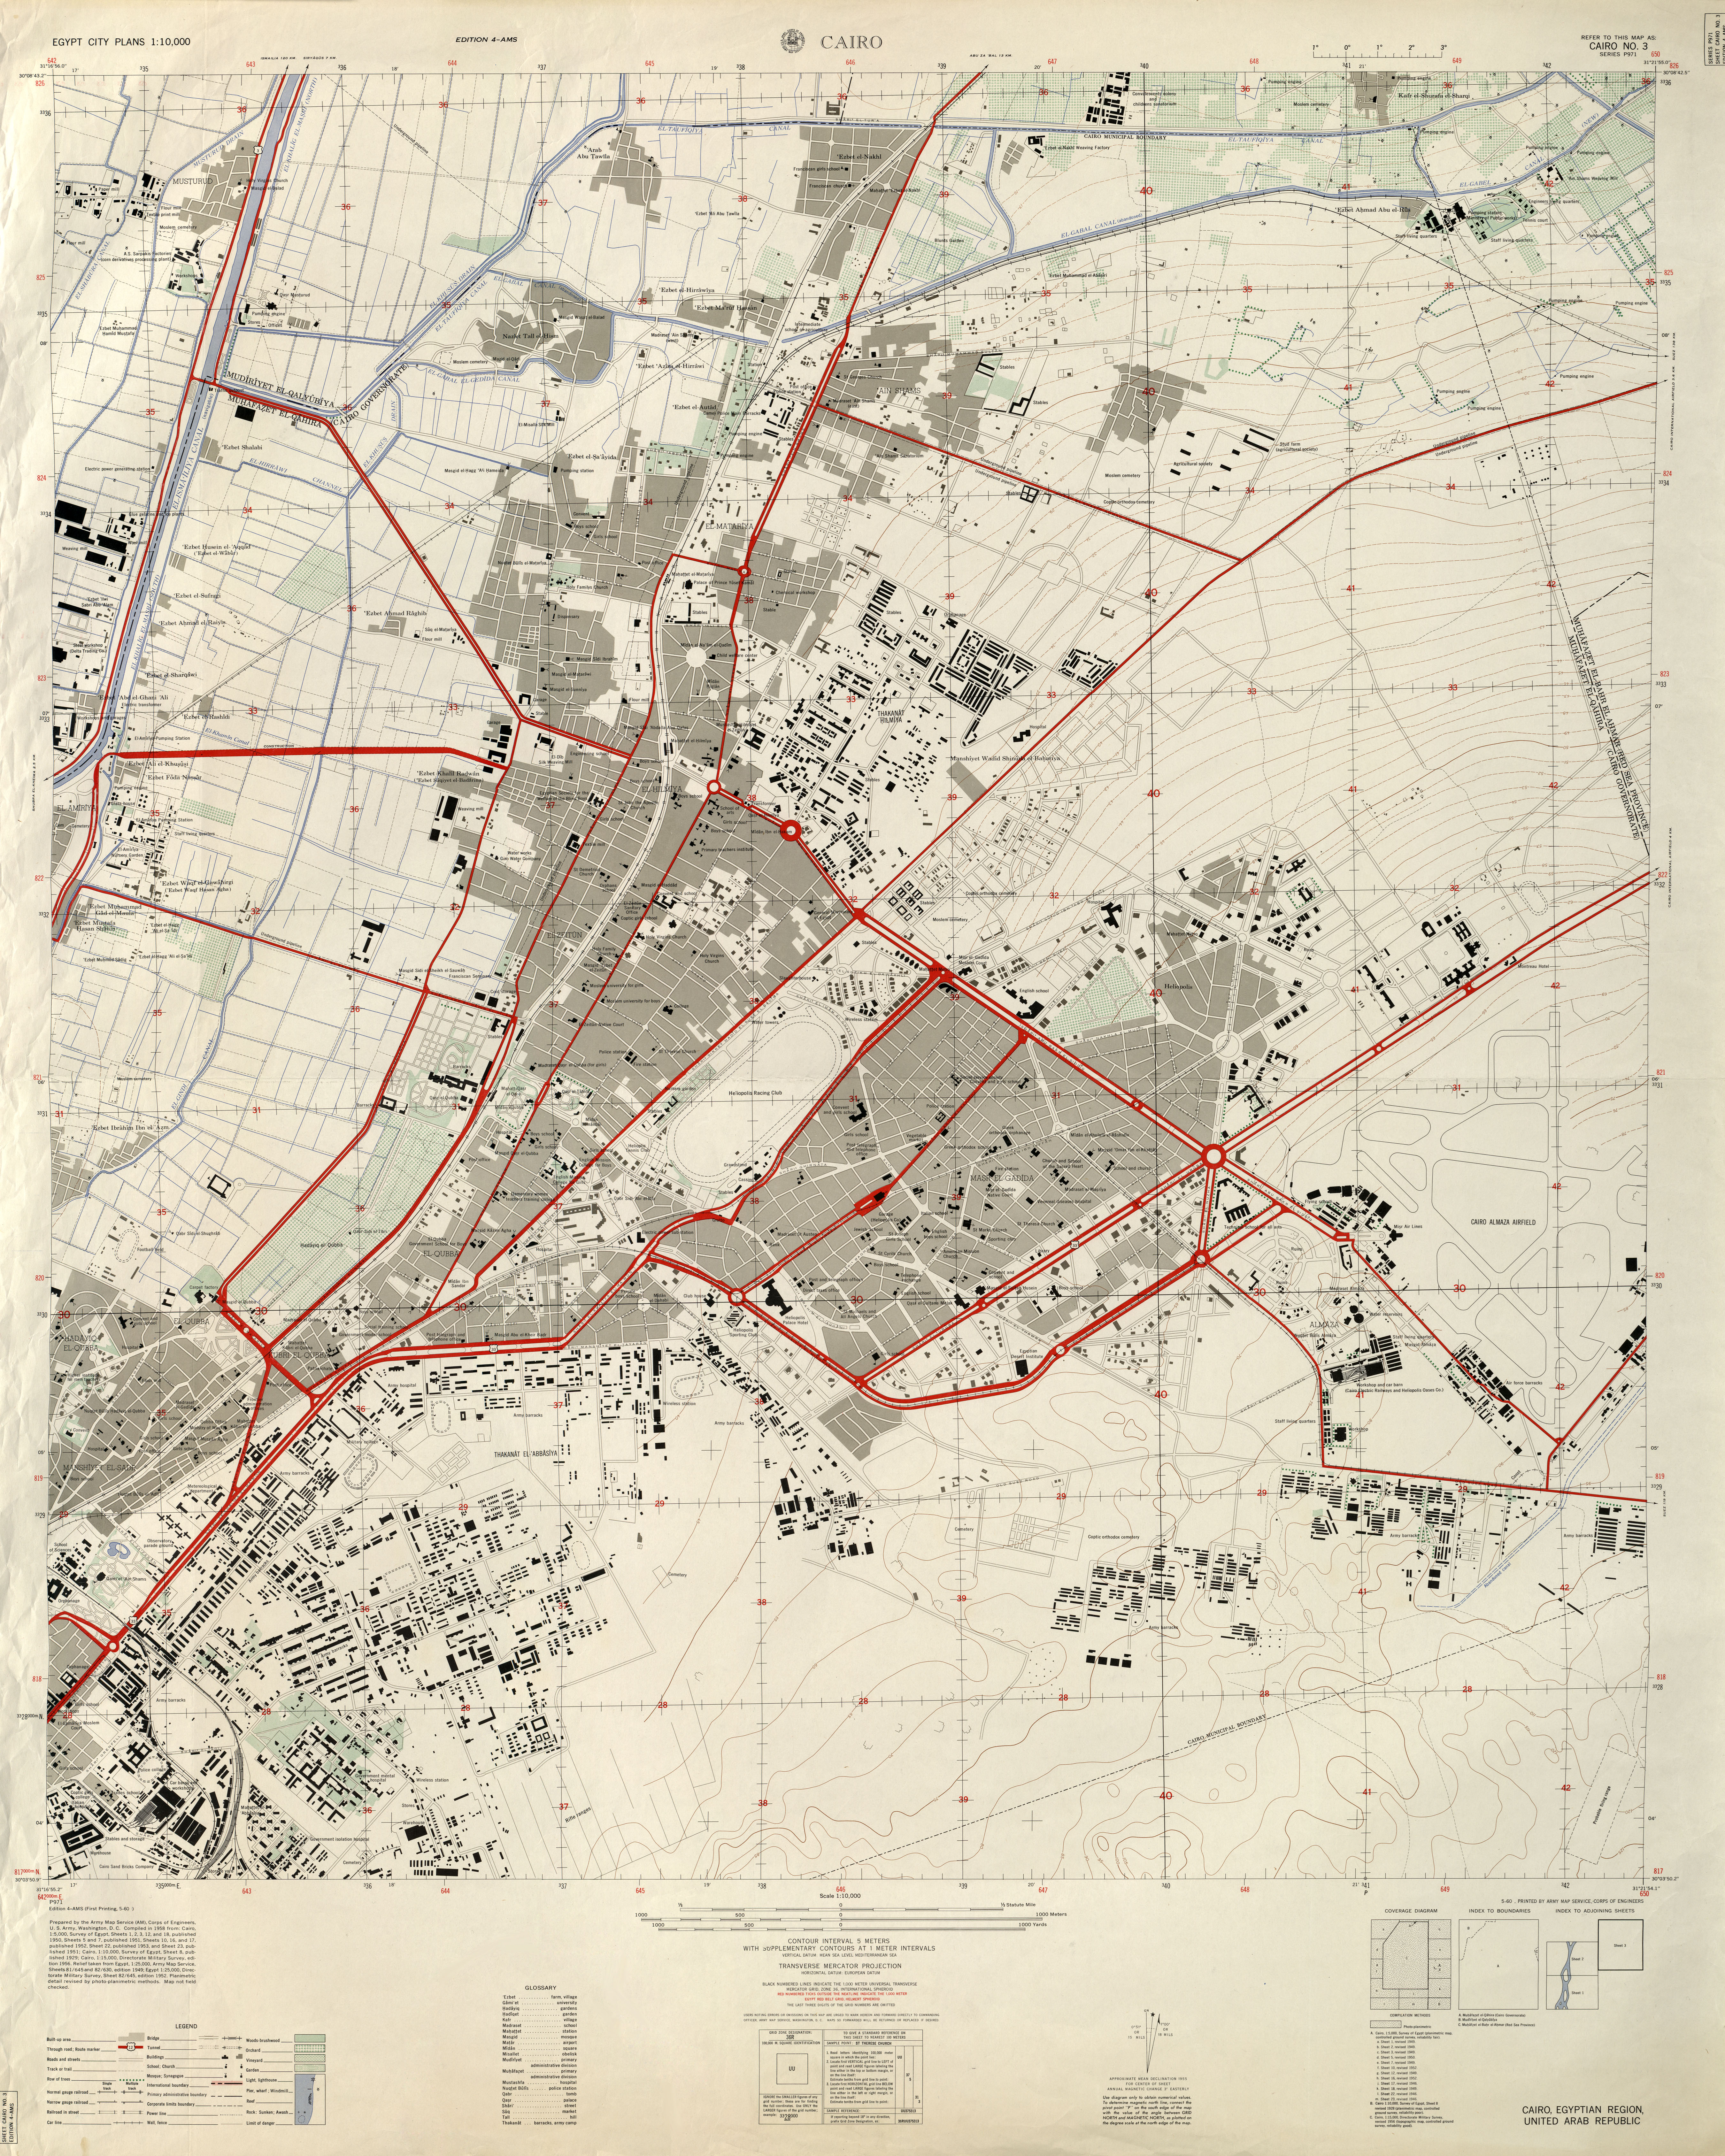 U S Army Map Service 1958 5 8mb Cairo Northeast